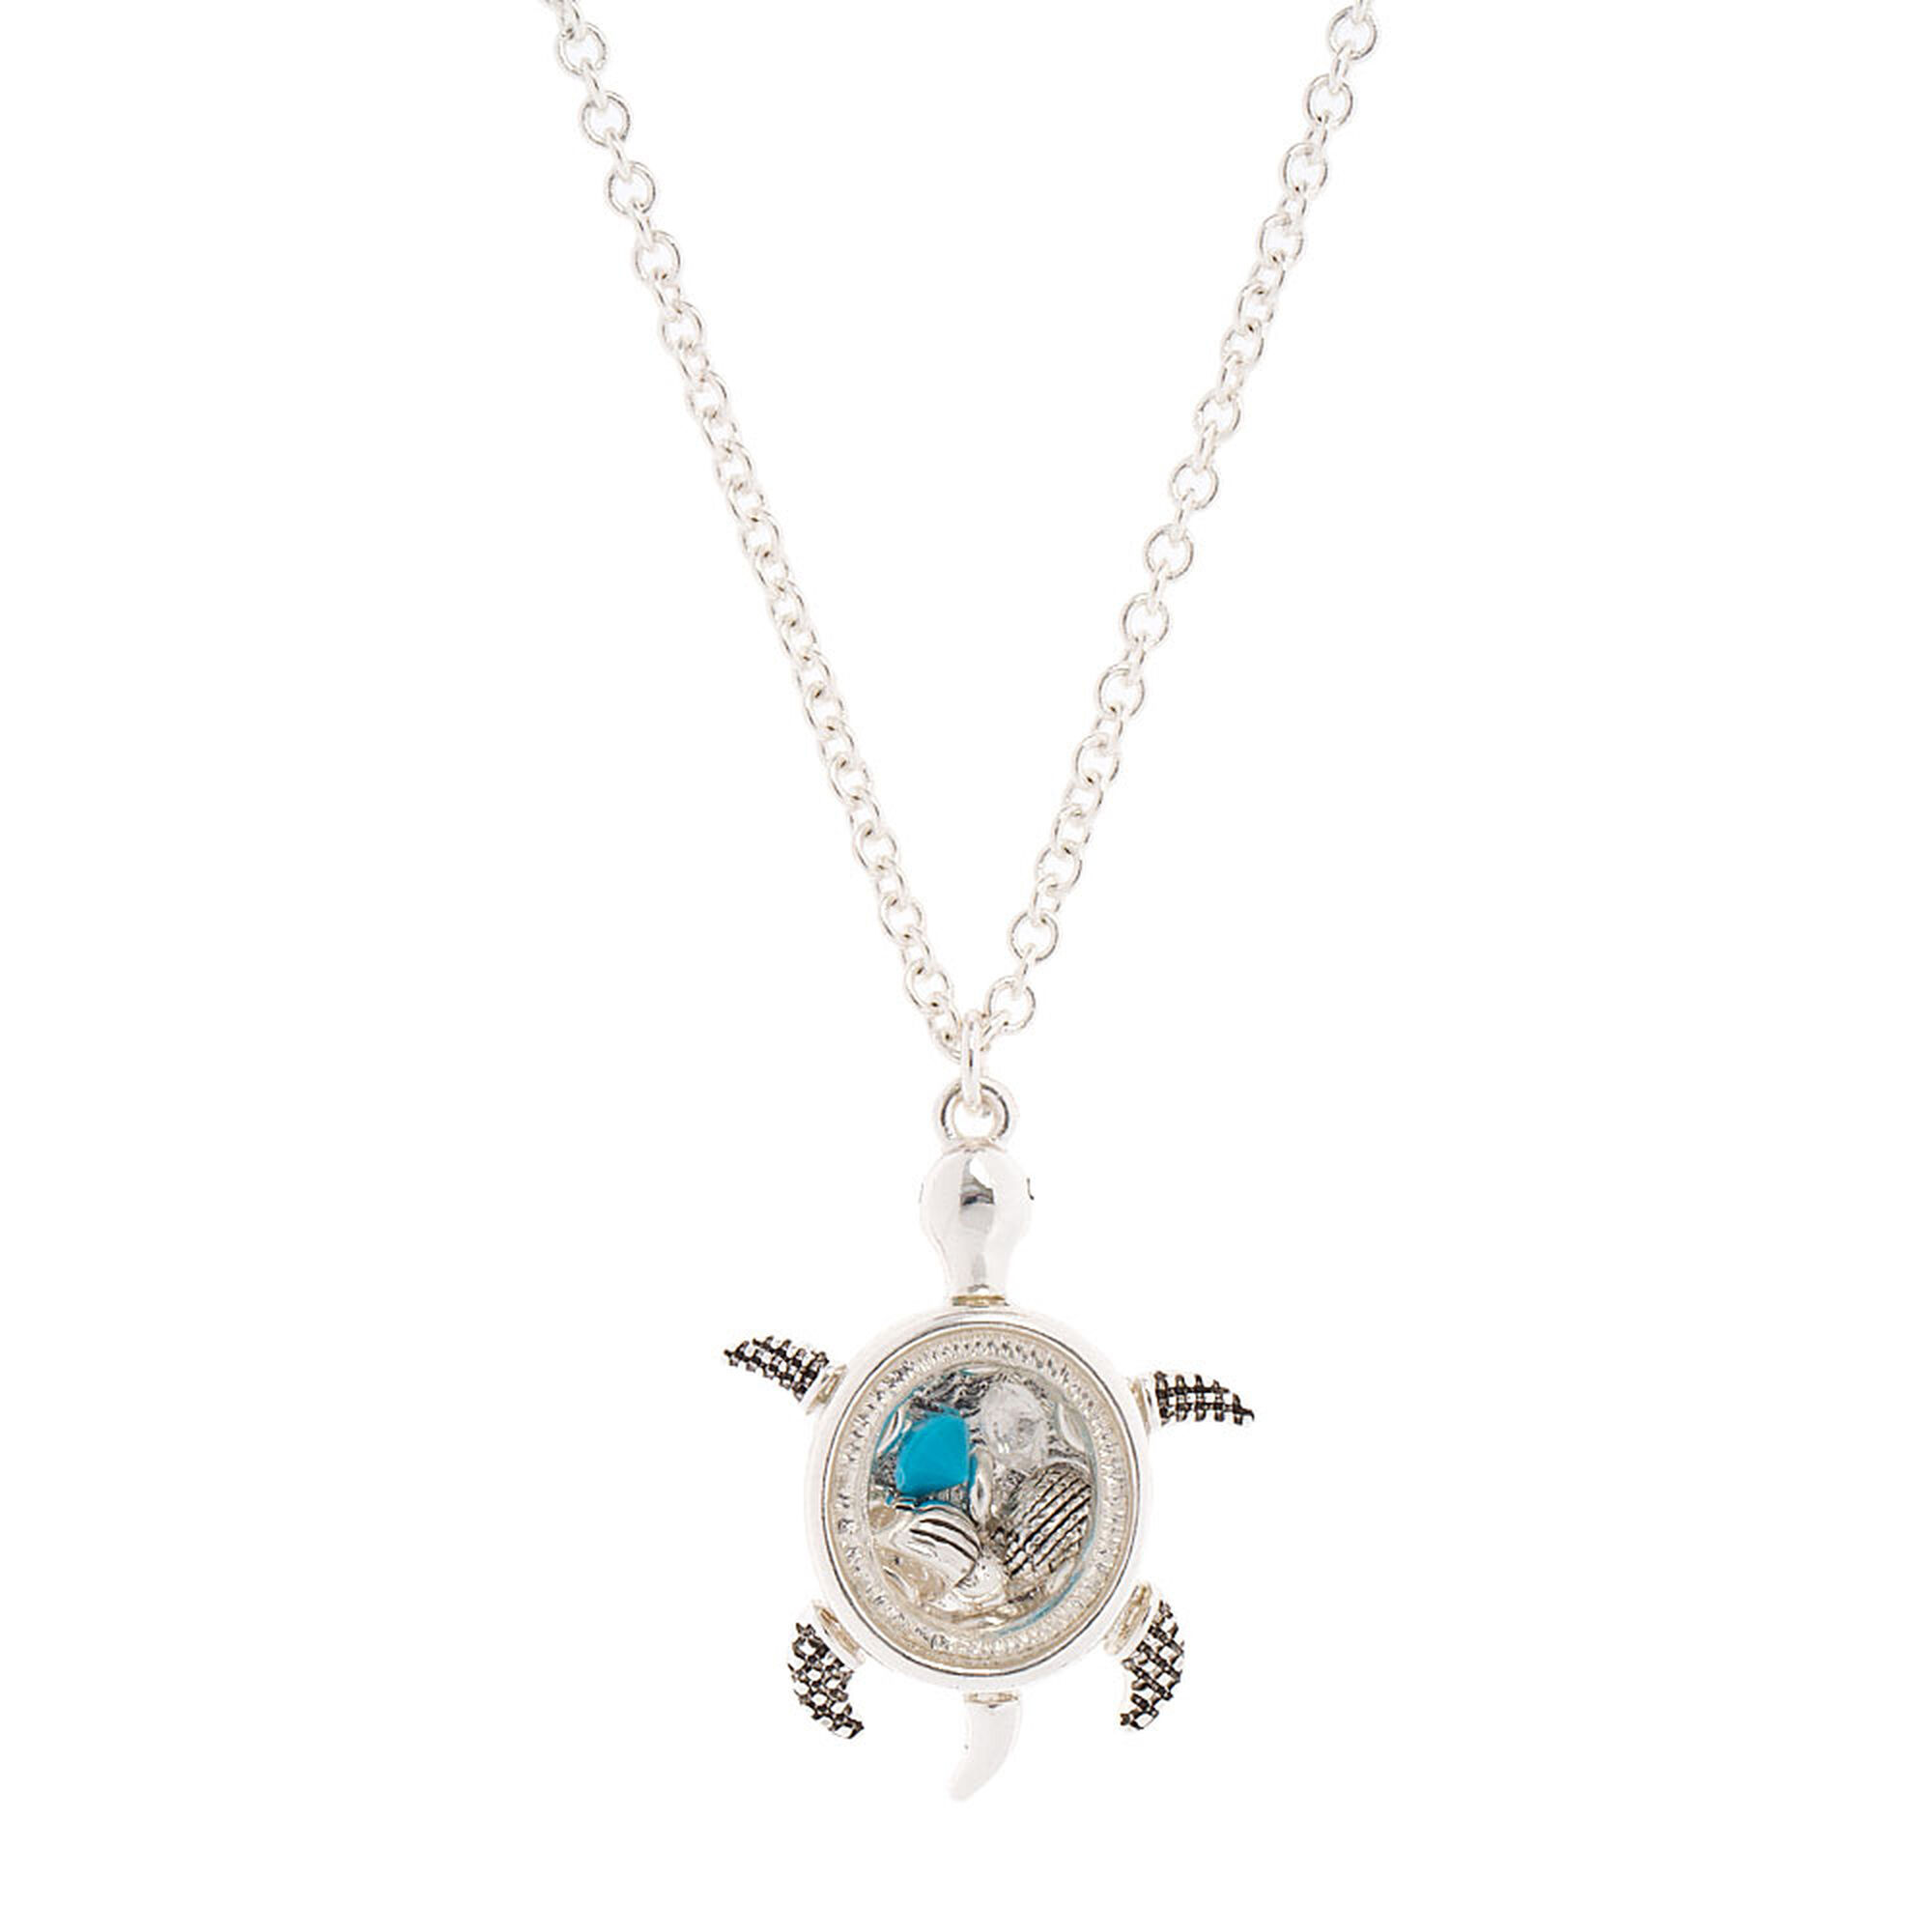 bone aritsan mini product necklace turtle pendant design honourable the